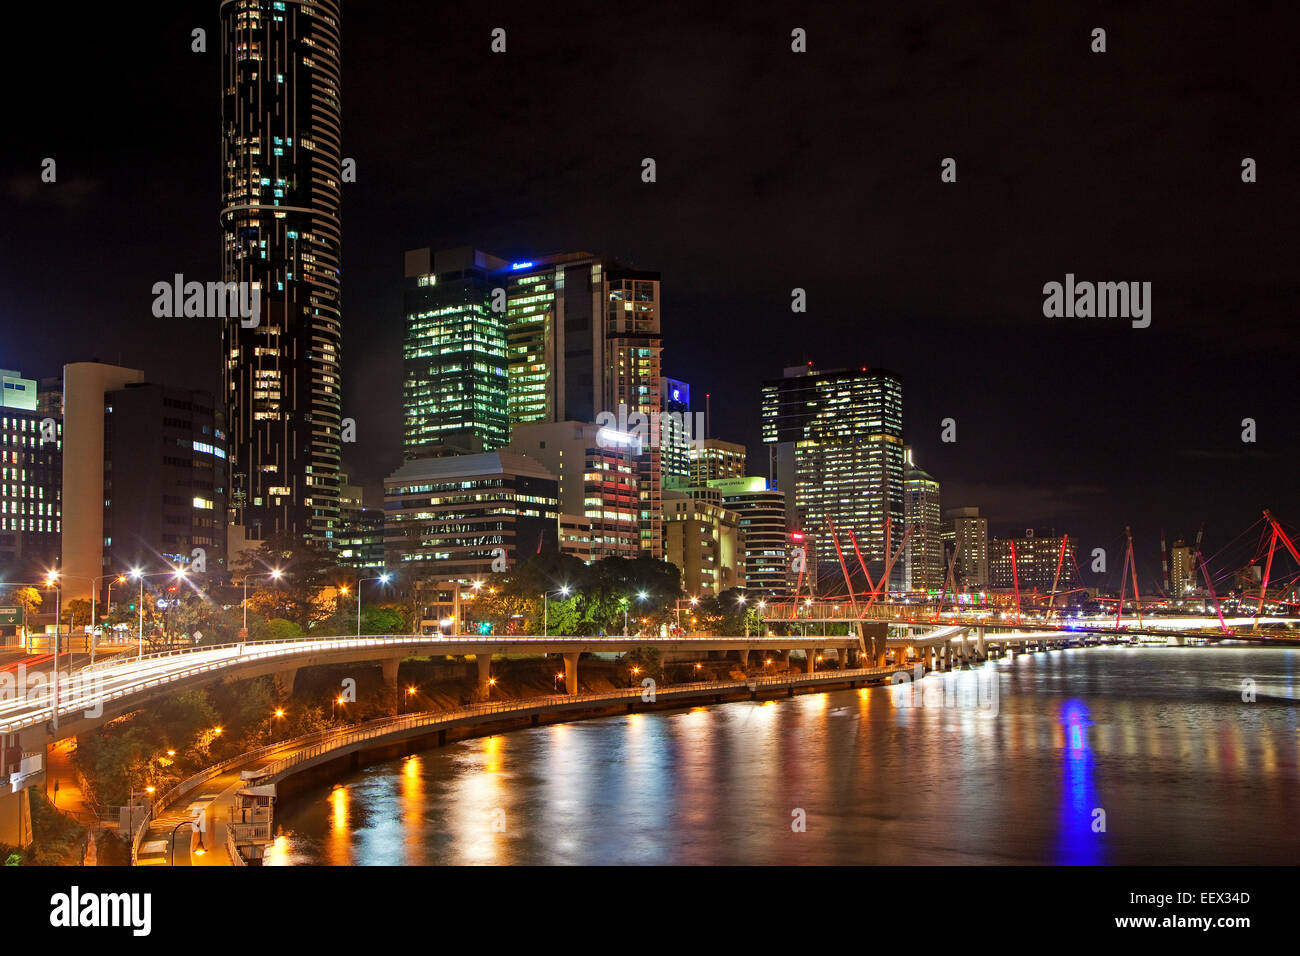 Skyline of Brisbane central business district showing skyscrapers and highrise office blocks by night, Queensland, - Stock Image